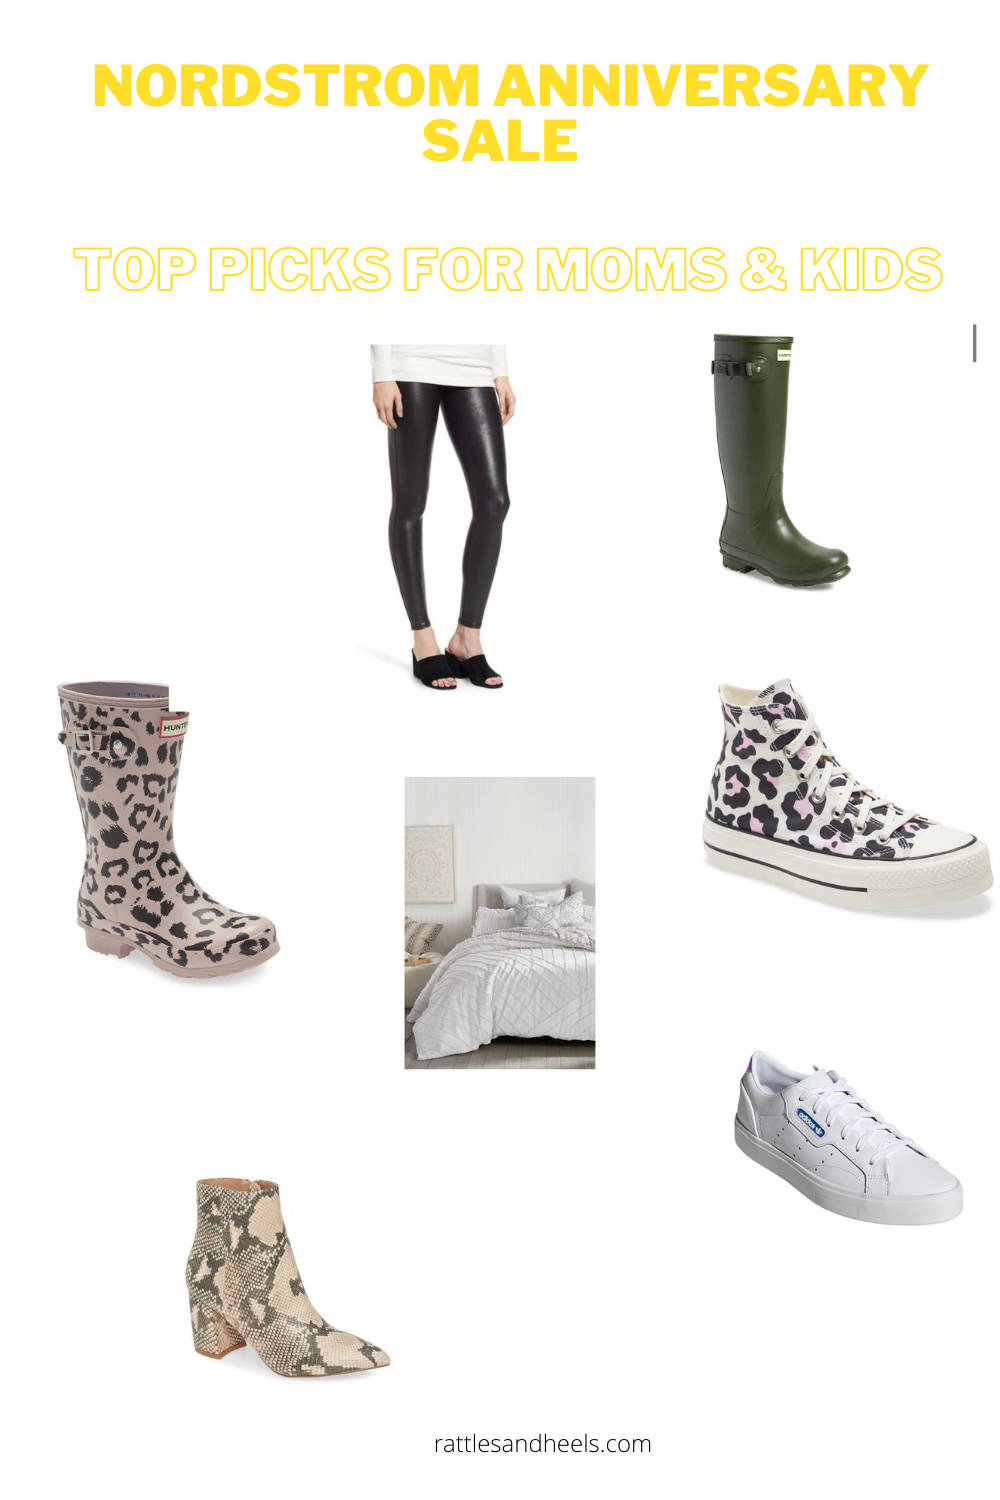 Nordstrom Anniversary Sale Top 9 Deals for Moms and Kids